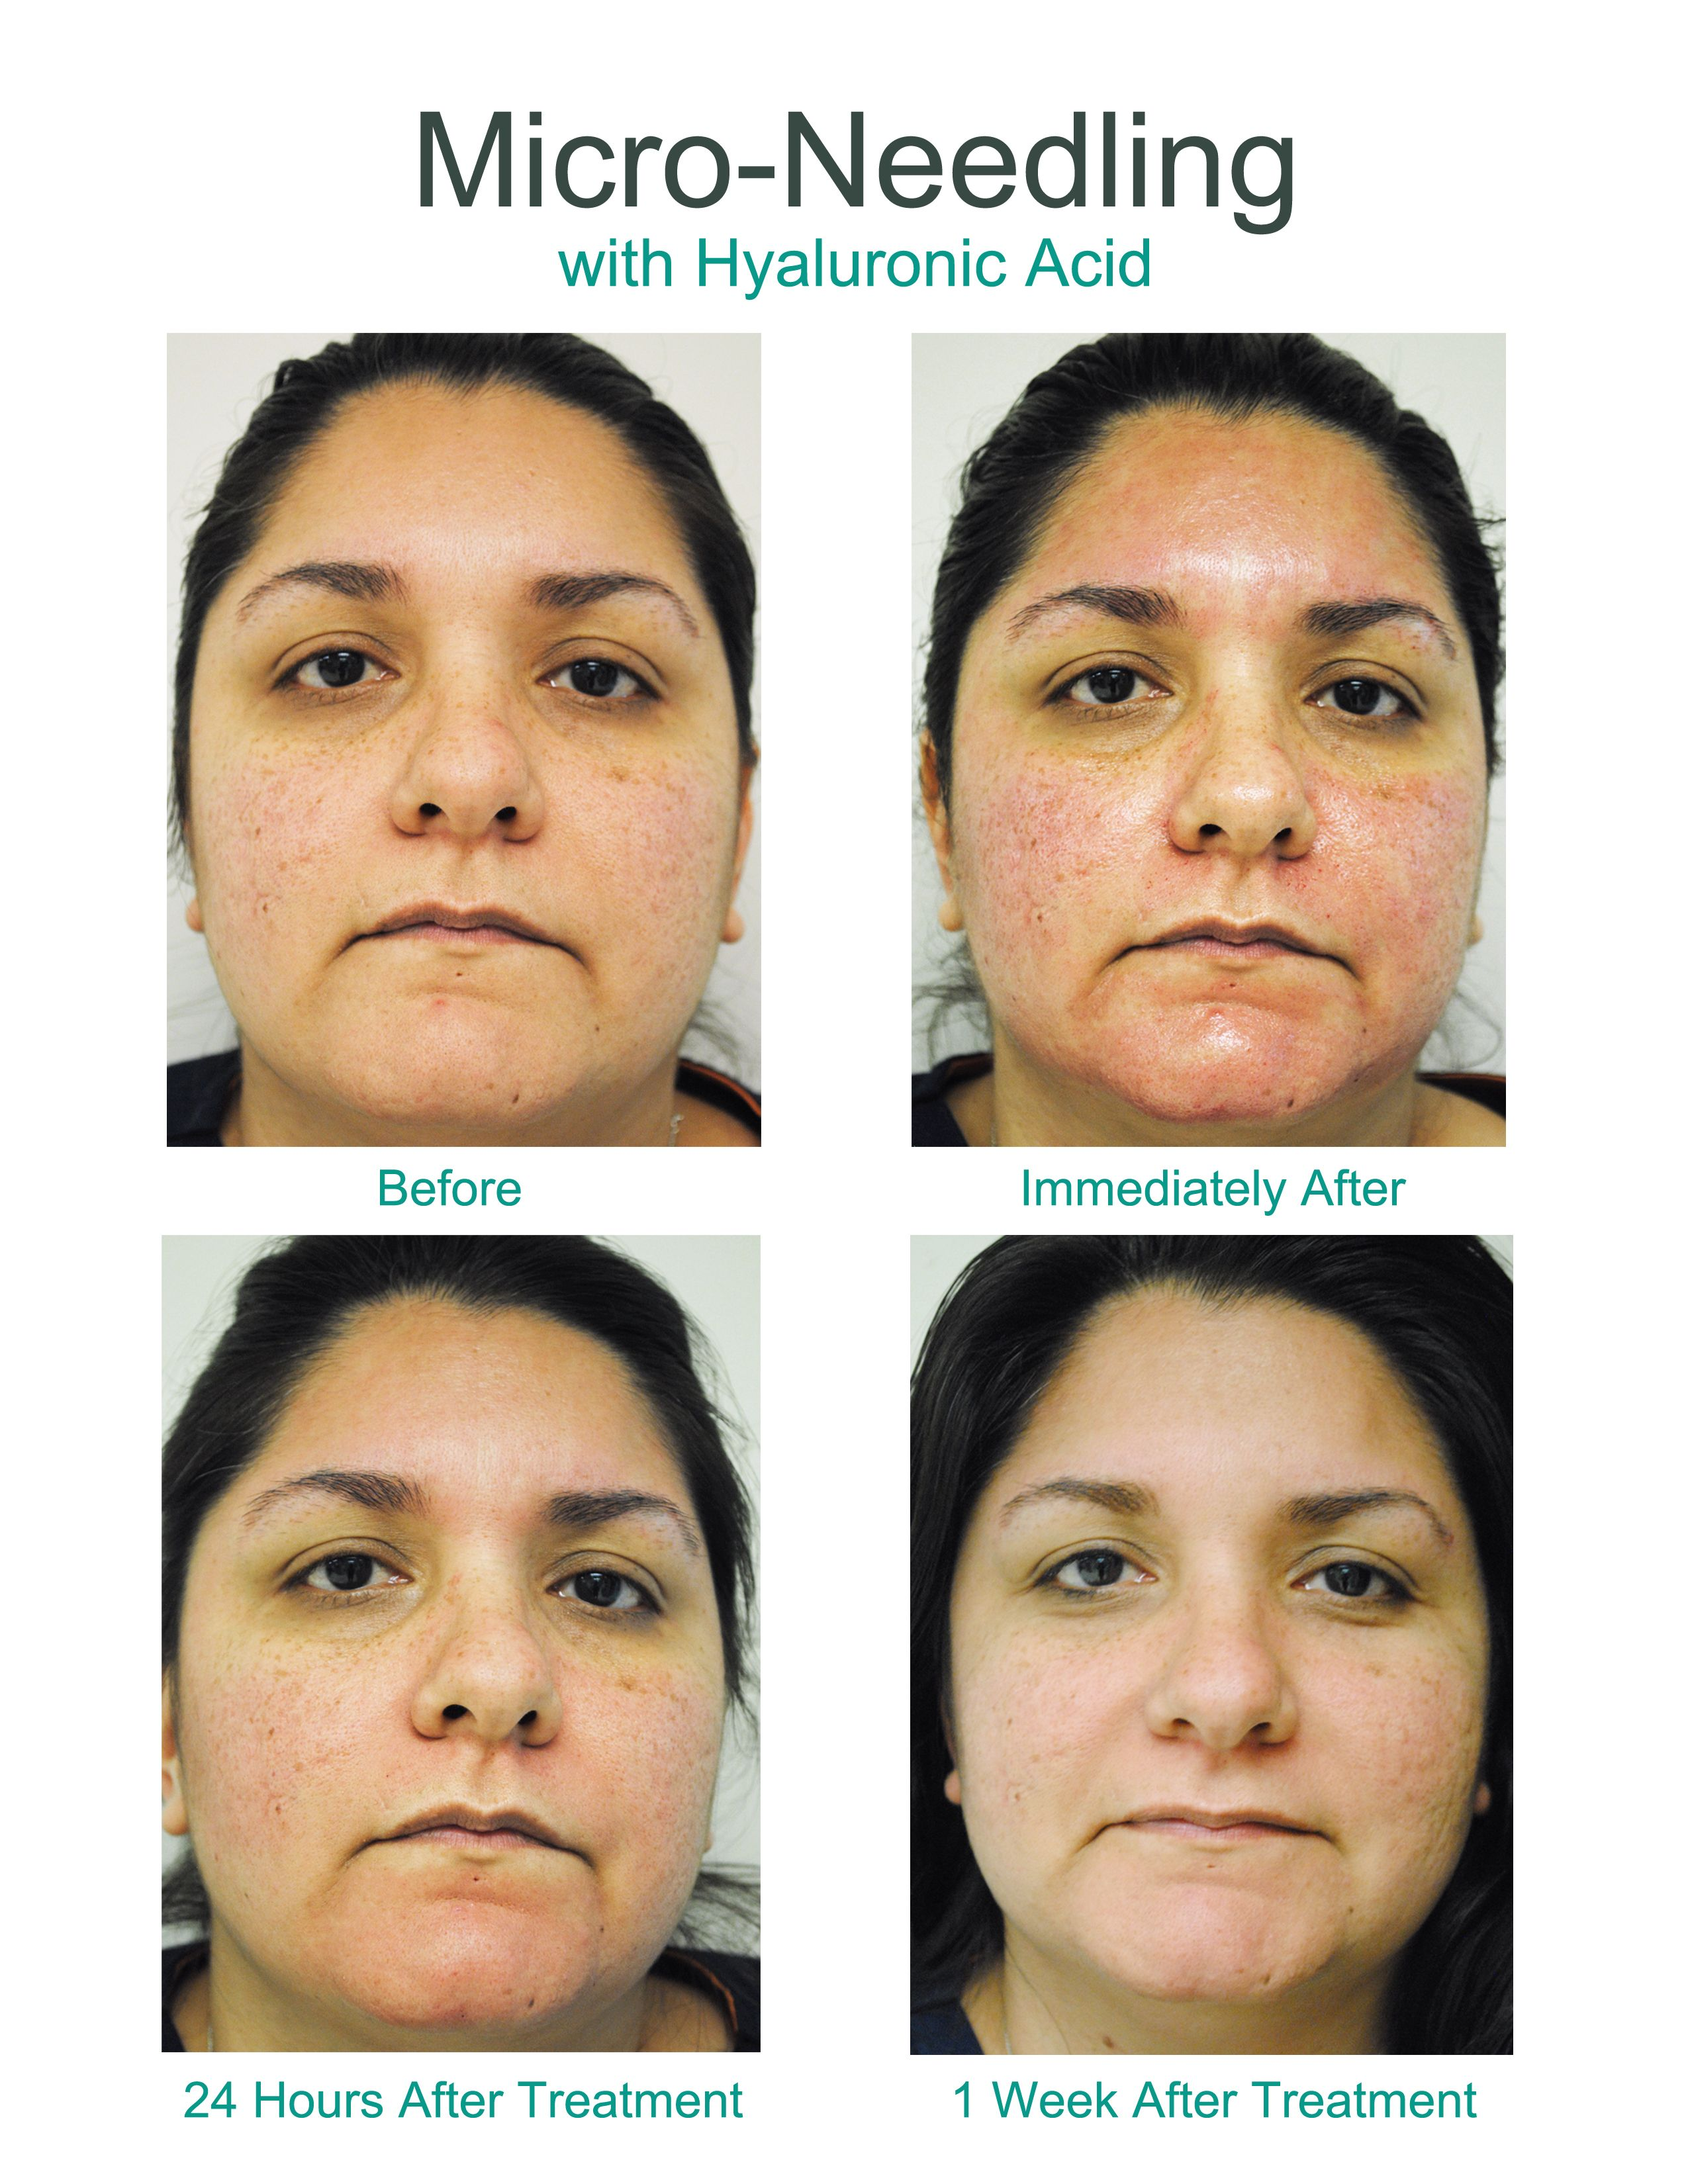 Micro-needling with Hyaluronic Acid before, during, and after